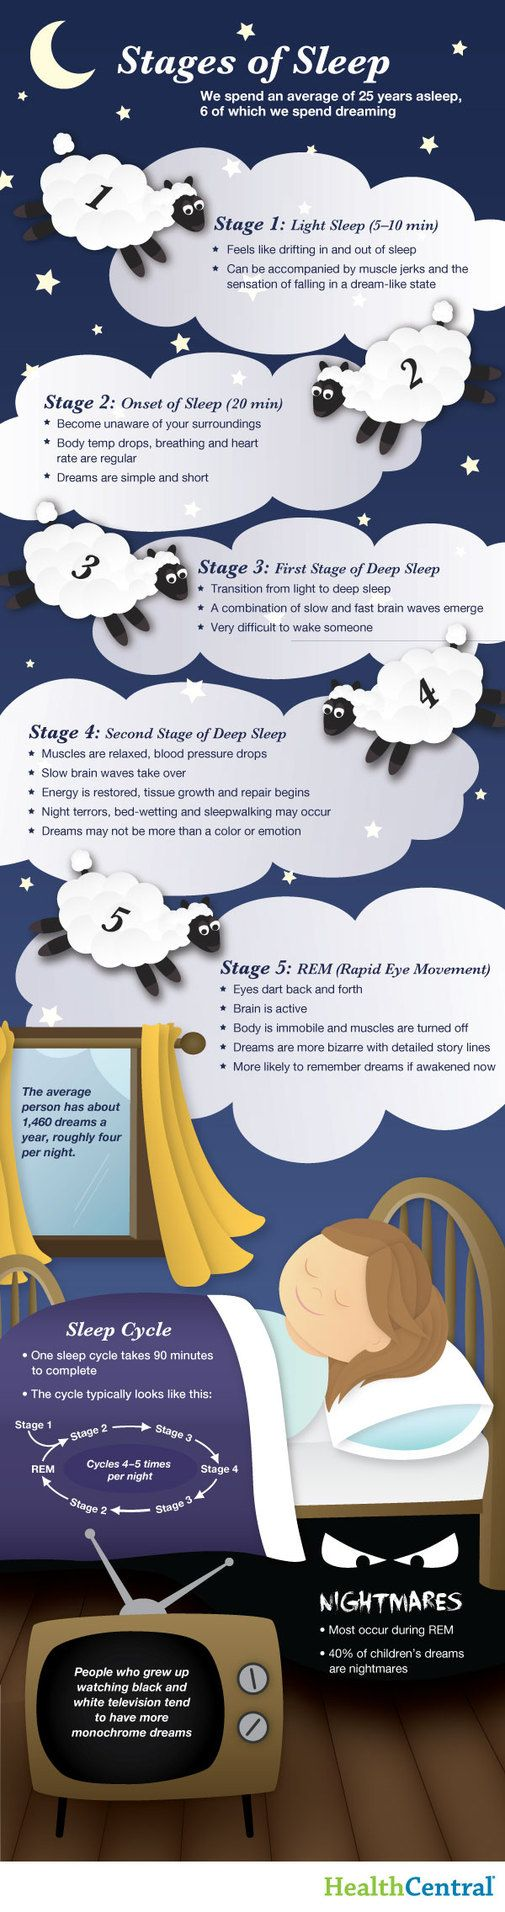 Different stages of sleep and how your sleep is affecting your health.: